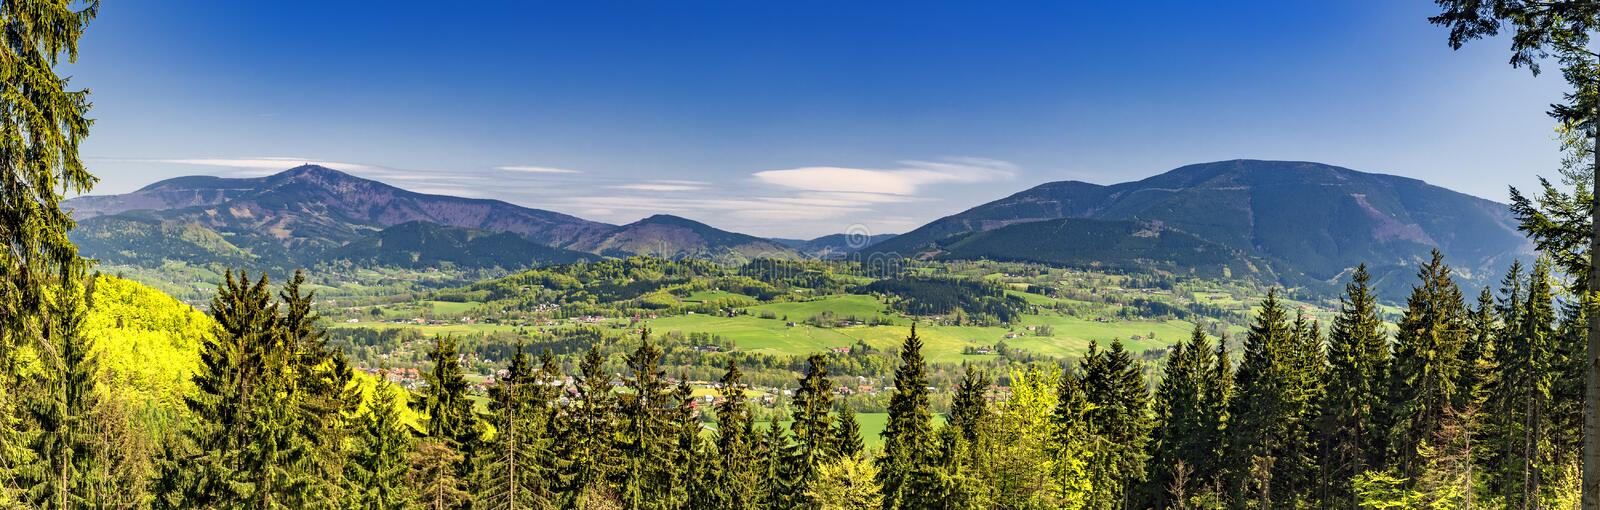 Mountains in Beskydy /panorama/ royalty free stock photo